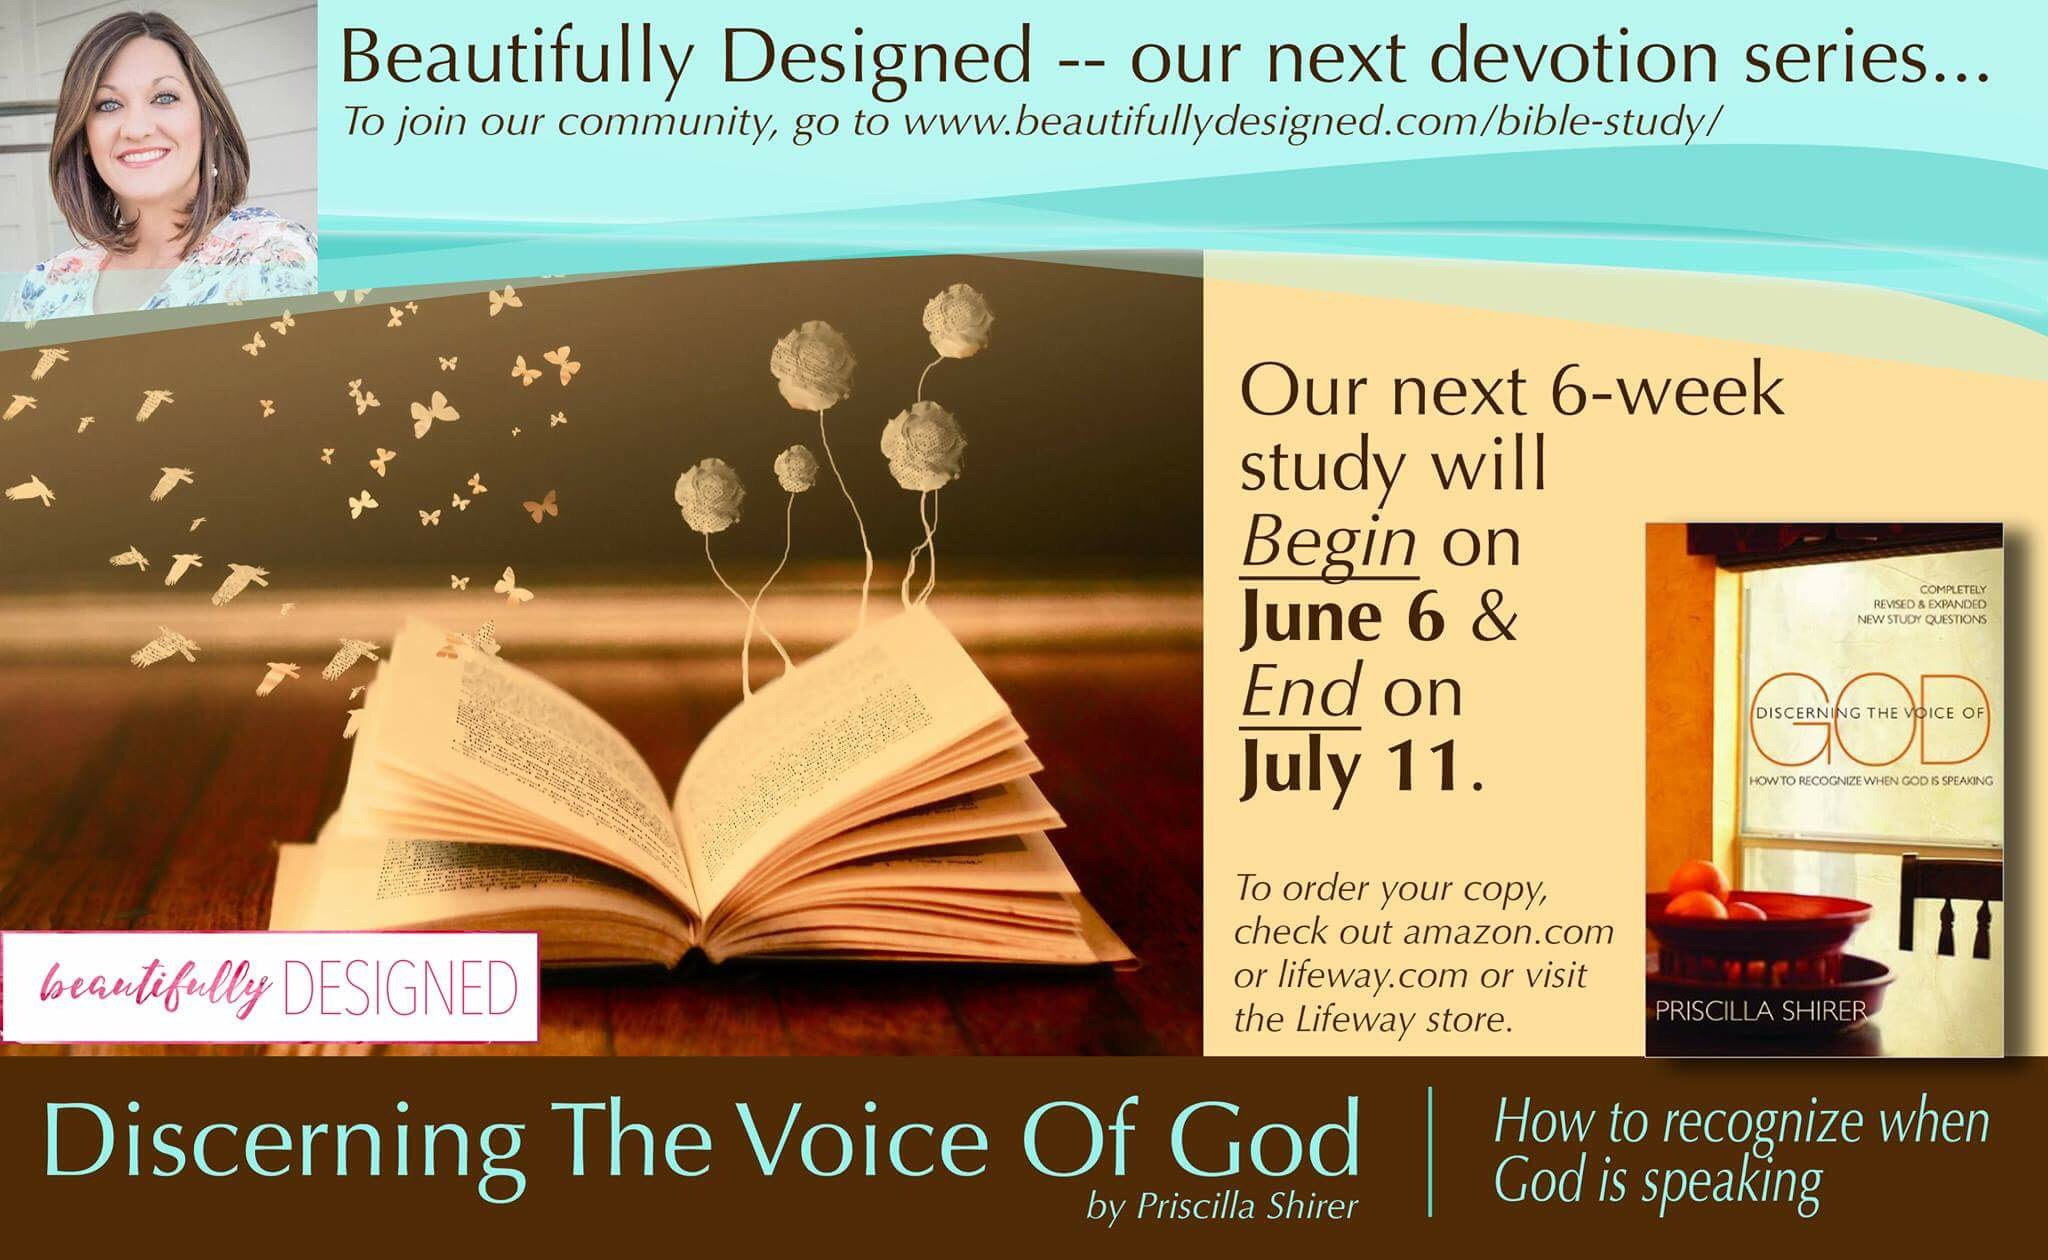 Voice of God: 01-02